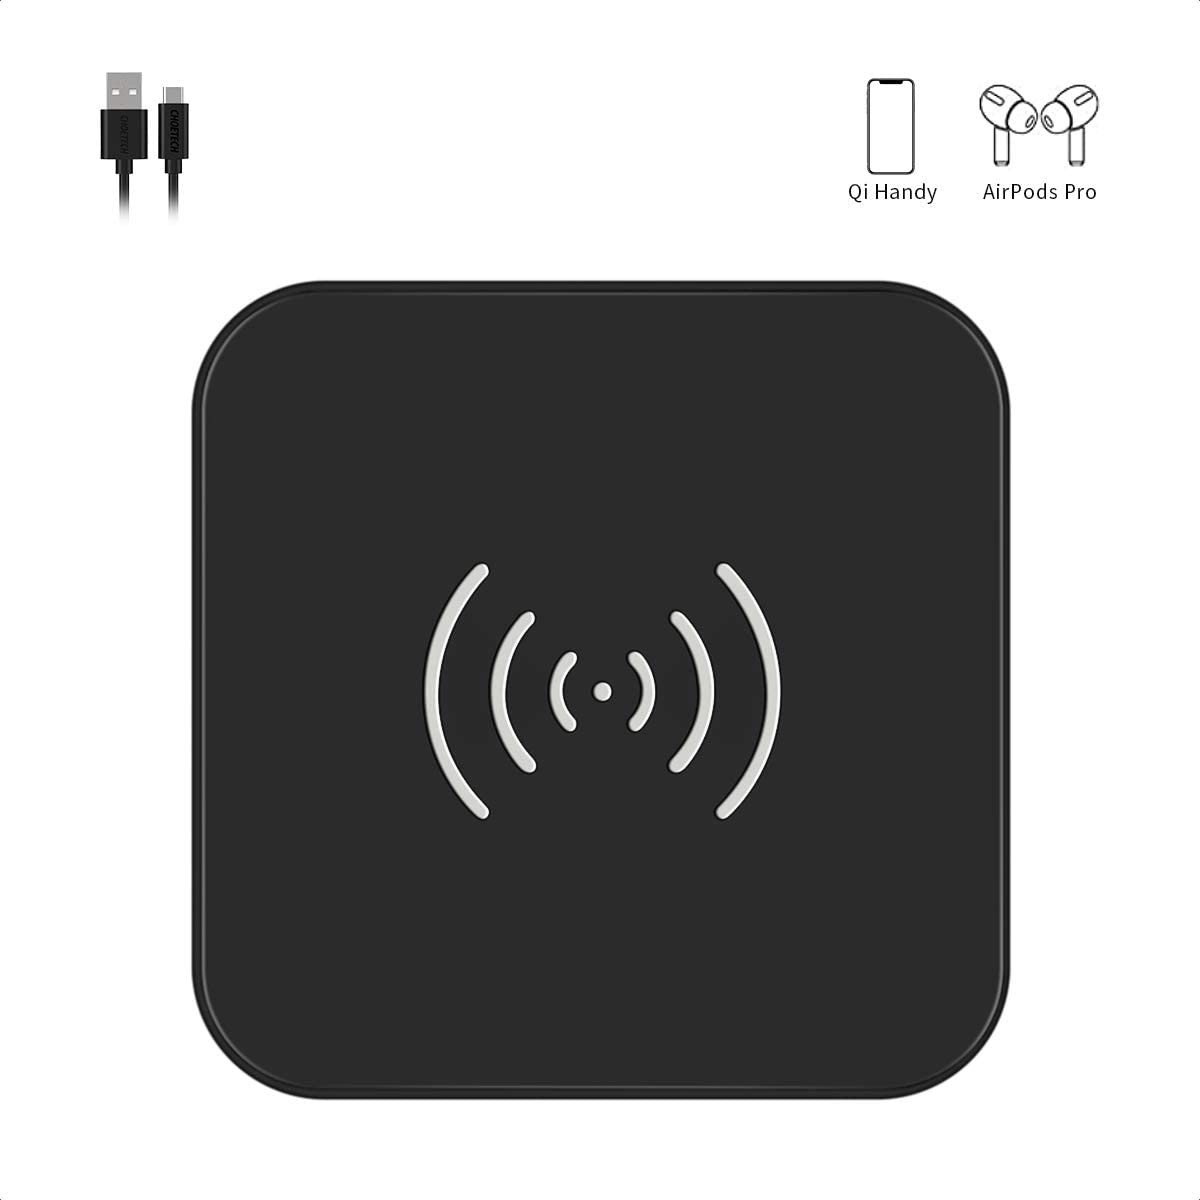 CHOETECH Cargador Inalámbrico Qi, Fast Wireless Charger, 7.5W para iPhone 11/11pro/SE 2020/X/XS MAX/XR/8, 10W Carga Rápida Samsung S20+/S10/S10+/S9/S8/Note10 y 5W Xiaomi 9/Huawei P30 Pro, Airpods2